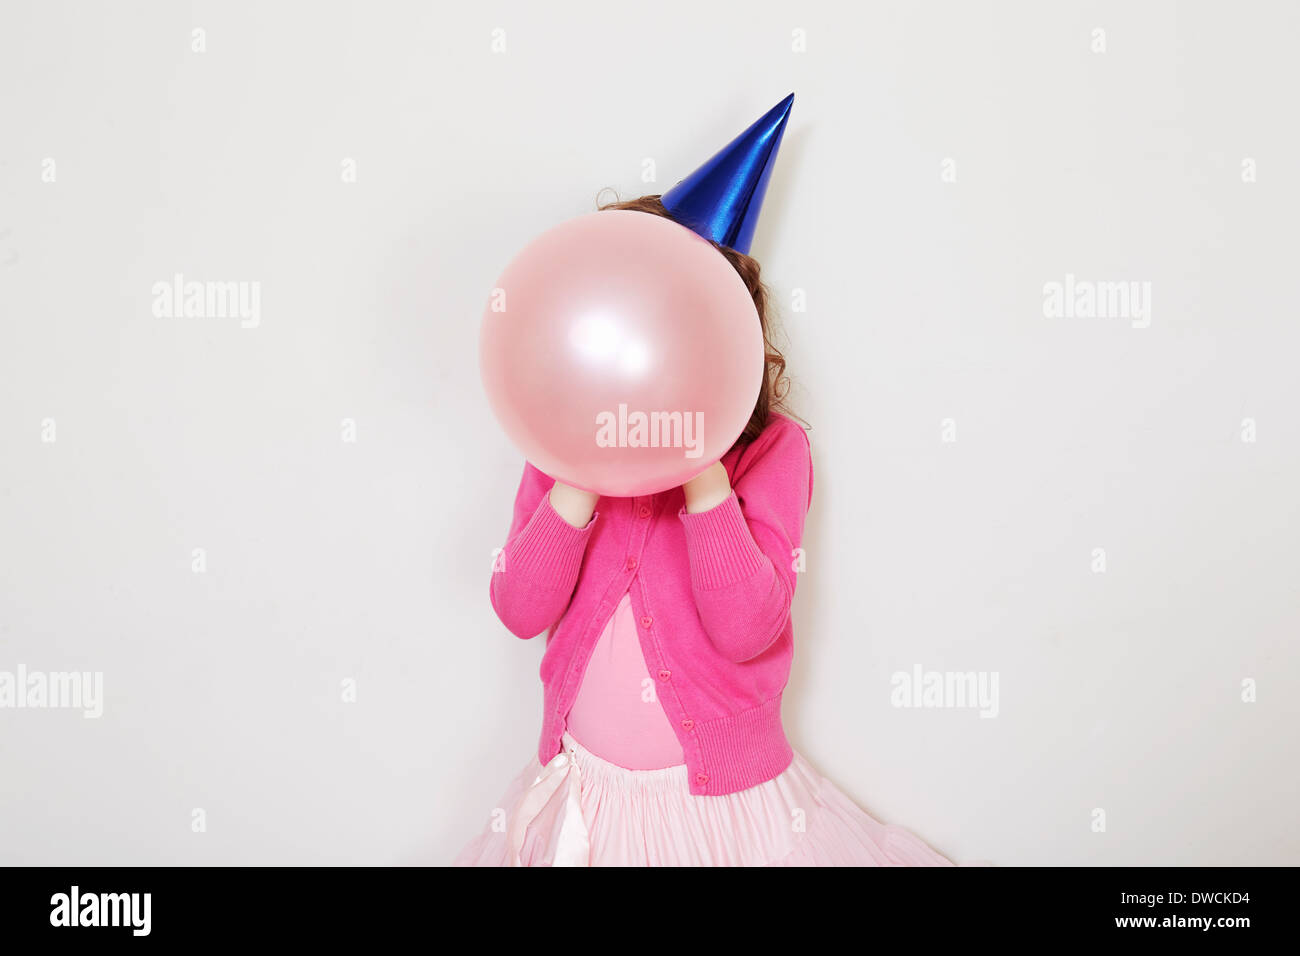 Girl holding pink balloon in front of face - Stock Image